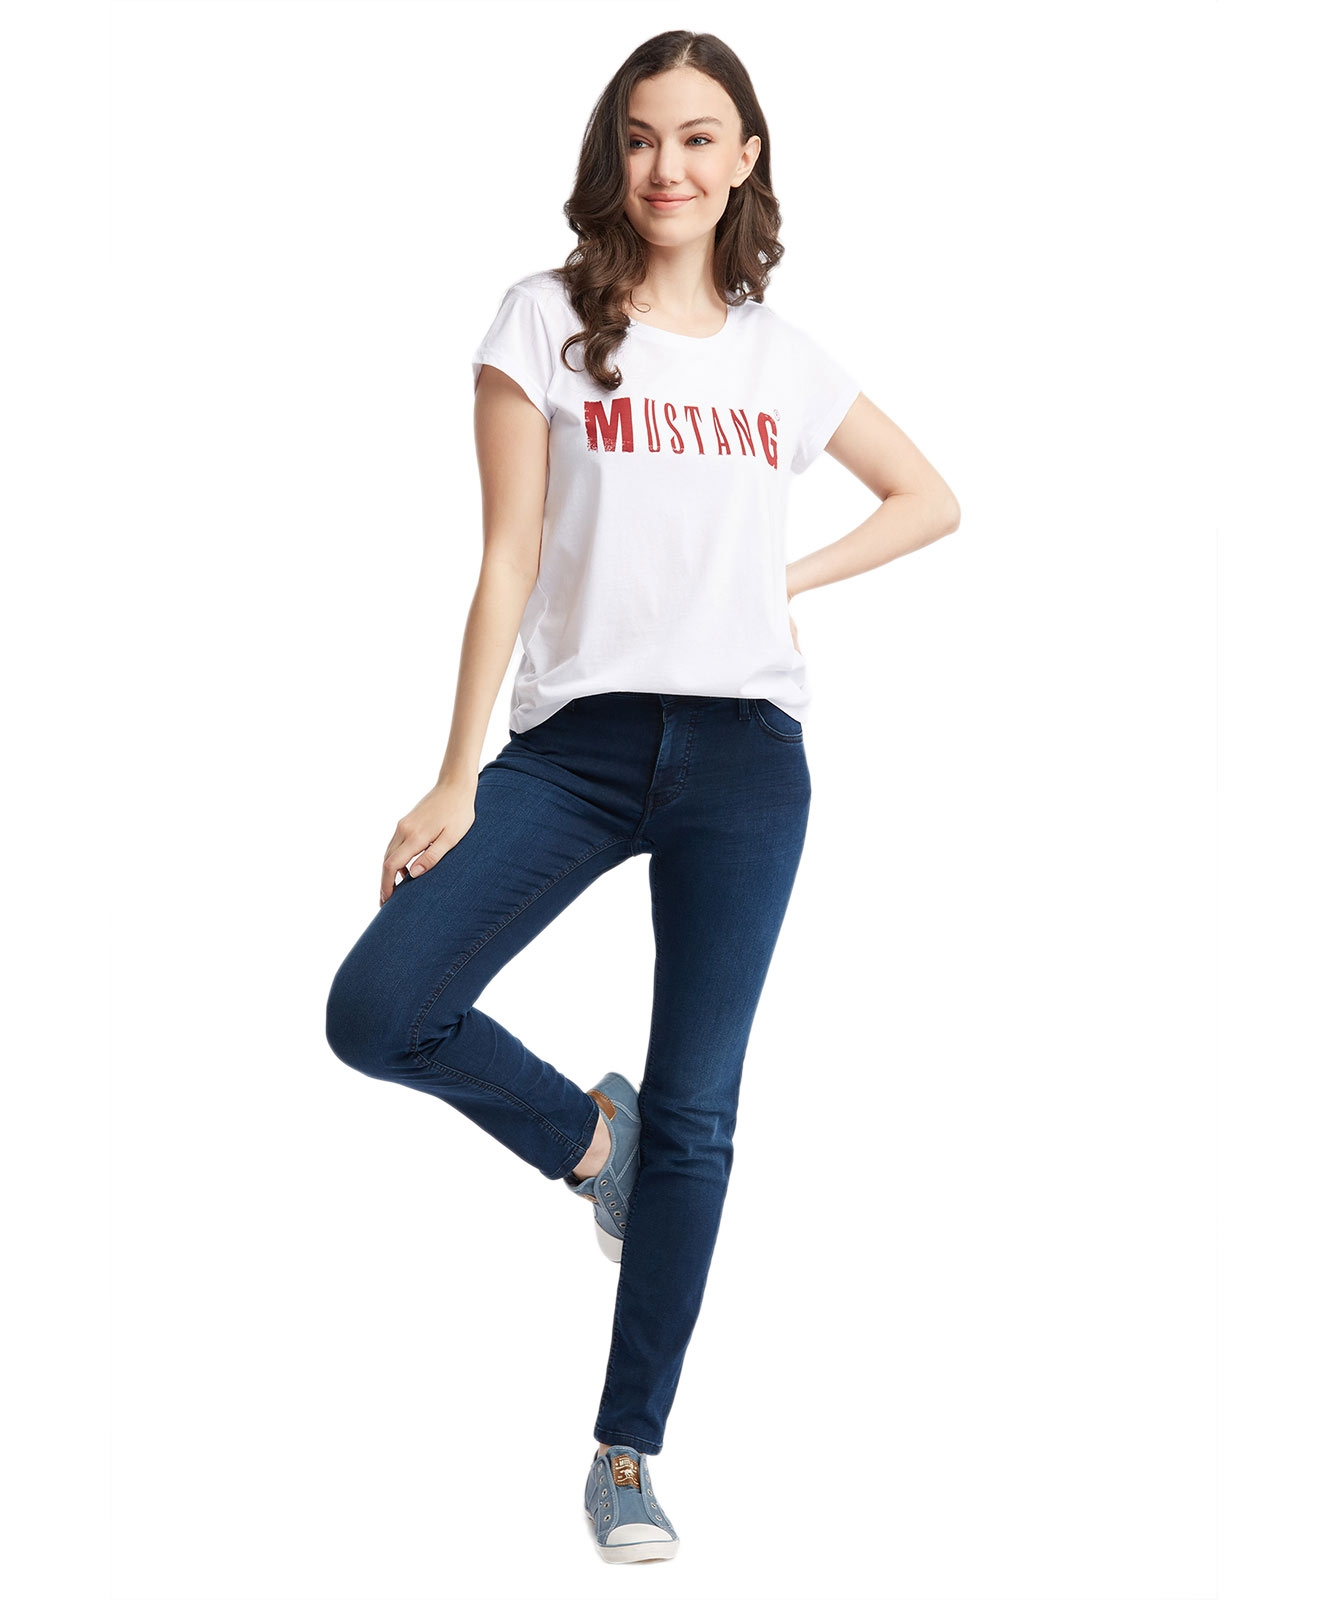 Hosen - Mustang Slim Fit Jeans Sissy Slim in Stone Washed  - Onlineshop Jeans Meile